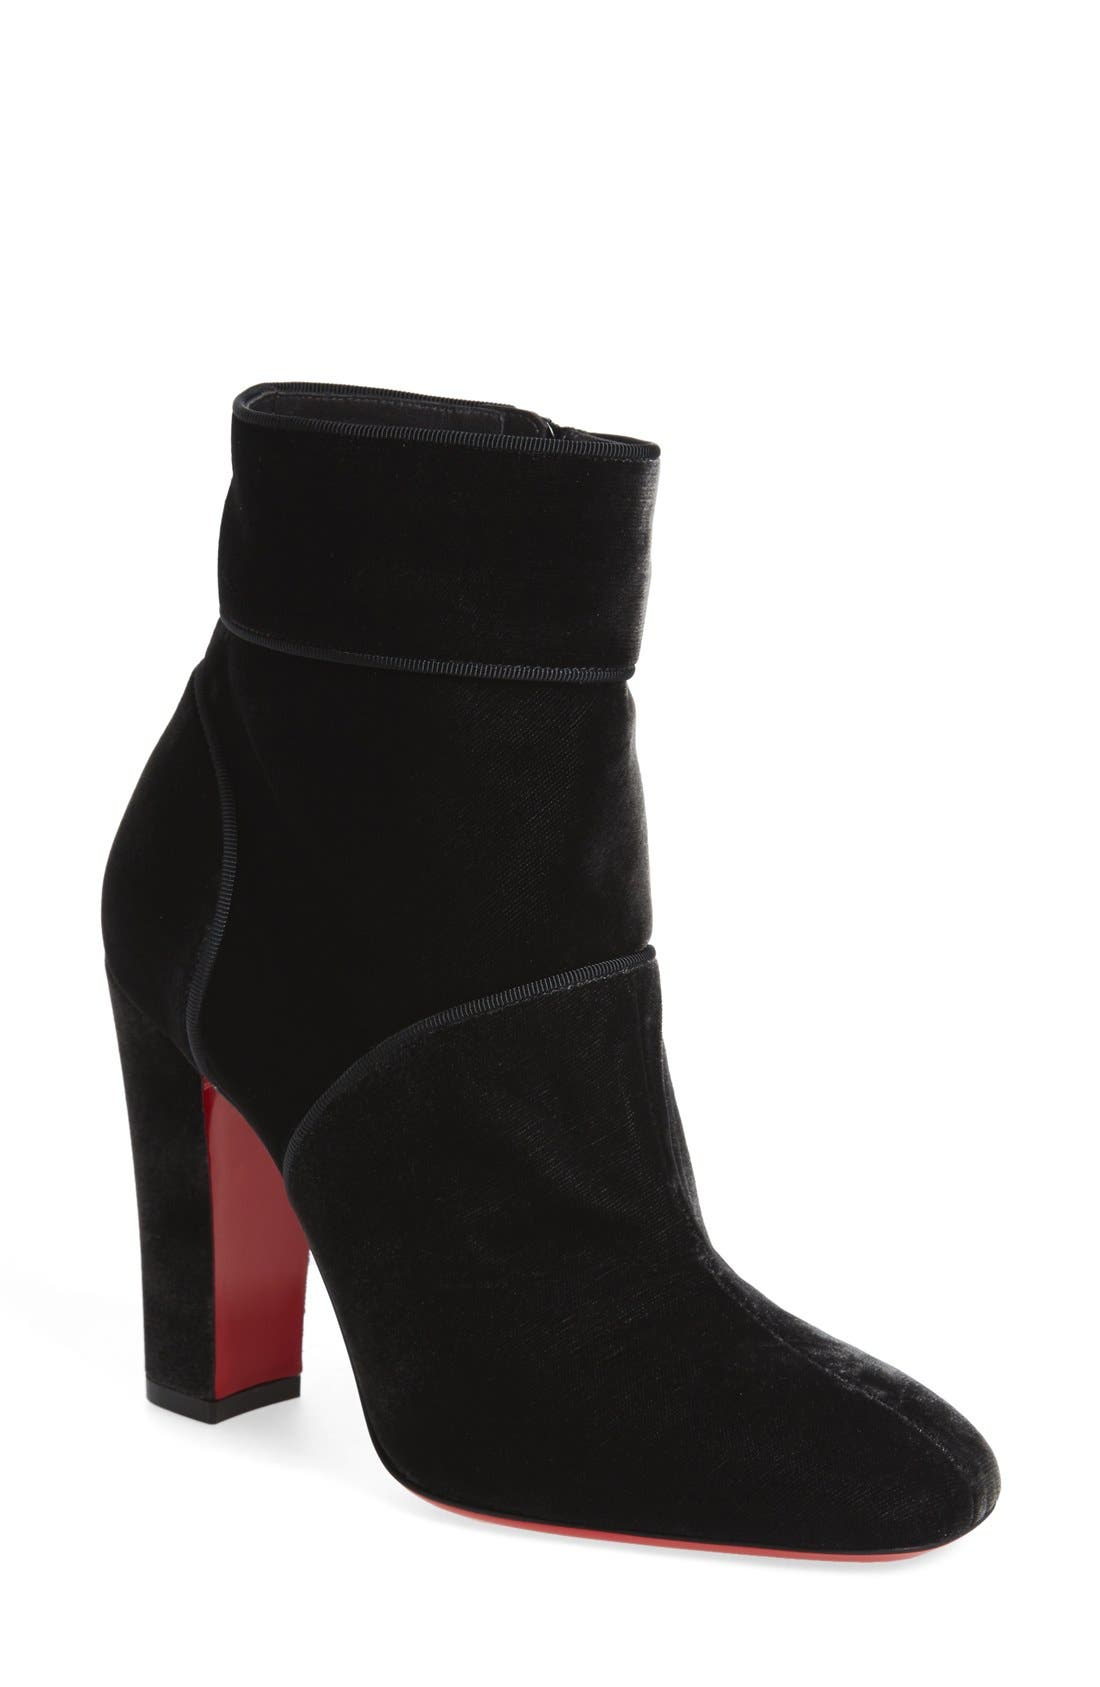 Alternate Image 1 Selected - Christian Louboutin '517' Bootie